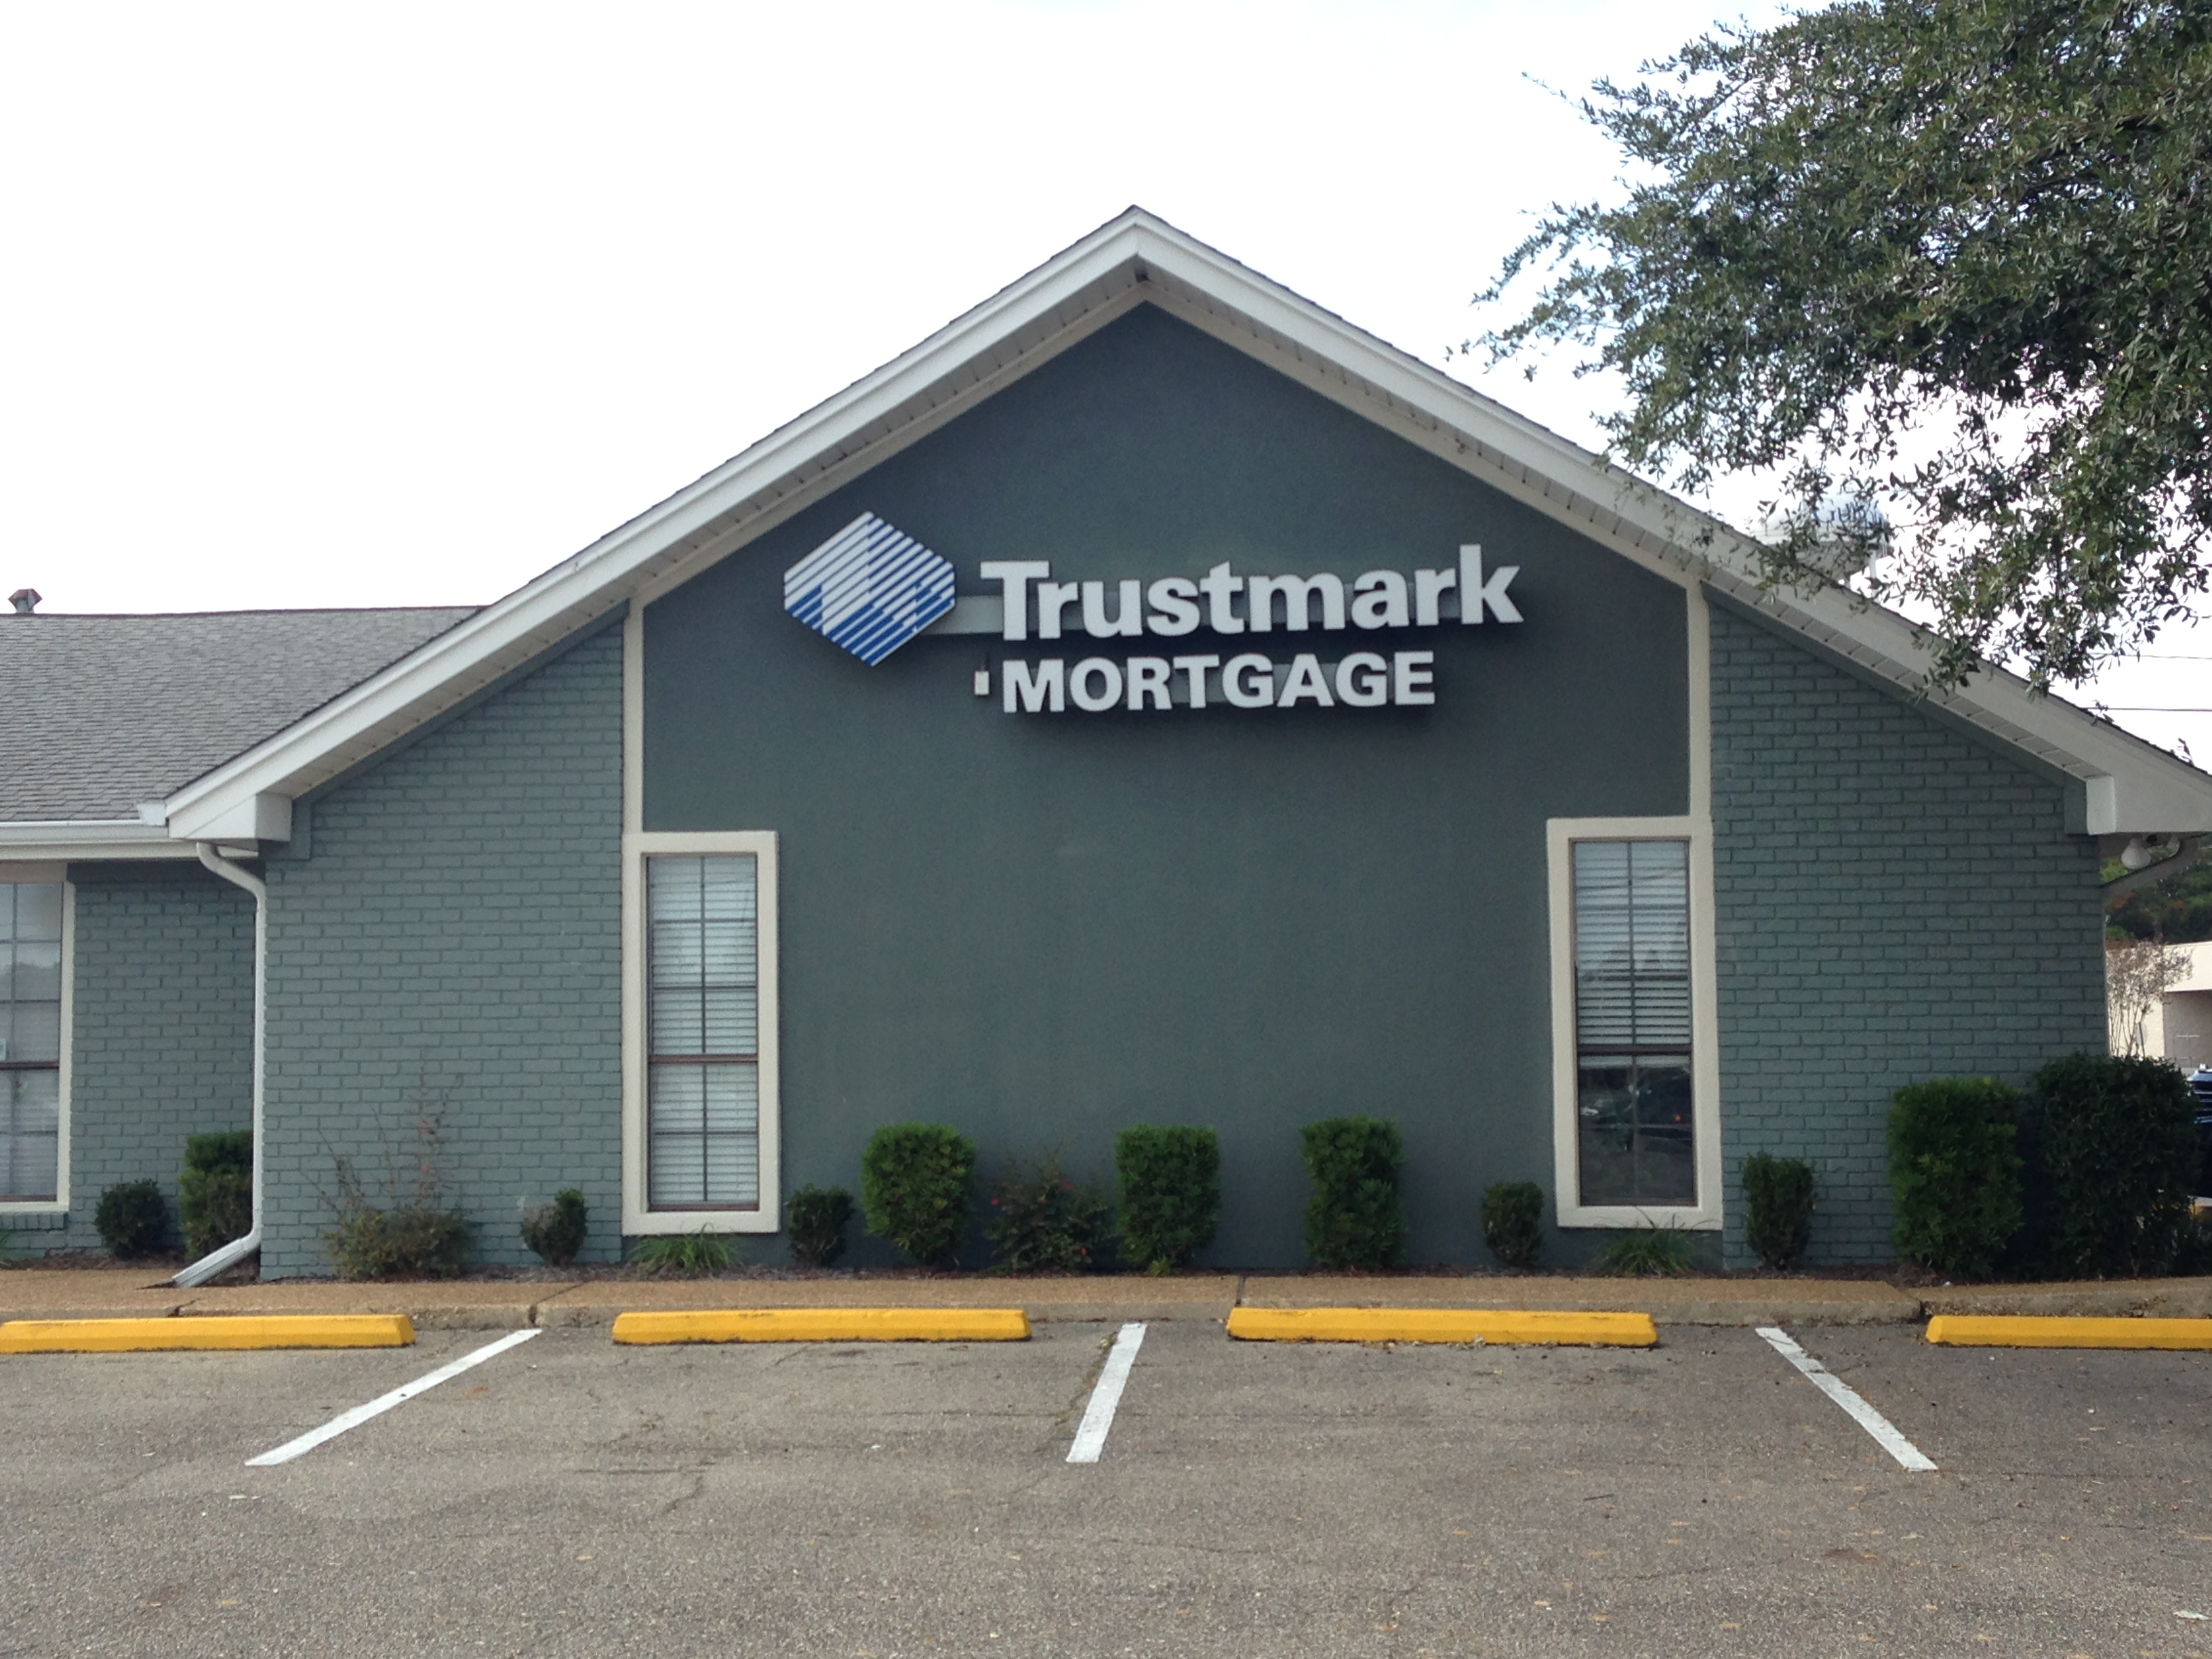 100179 - Trustmark Bank and ATM Location in Gulfport, MS